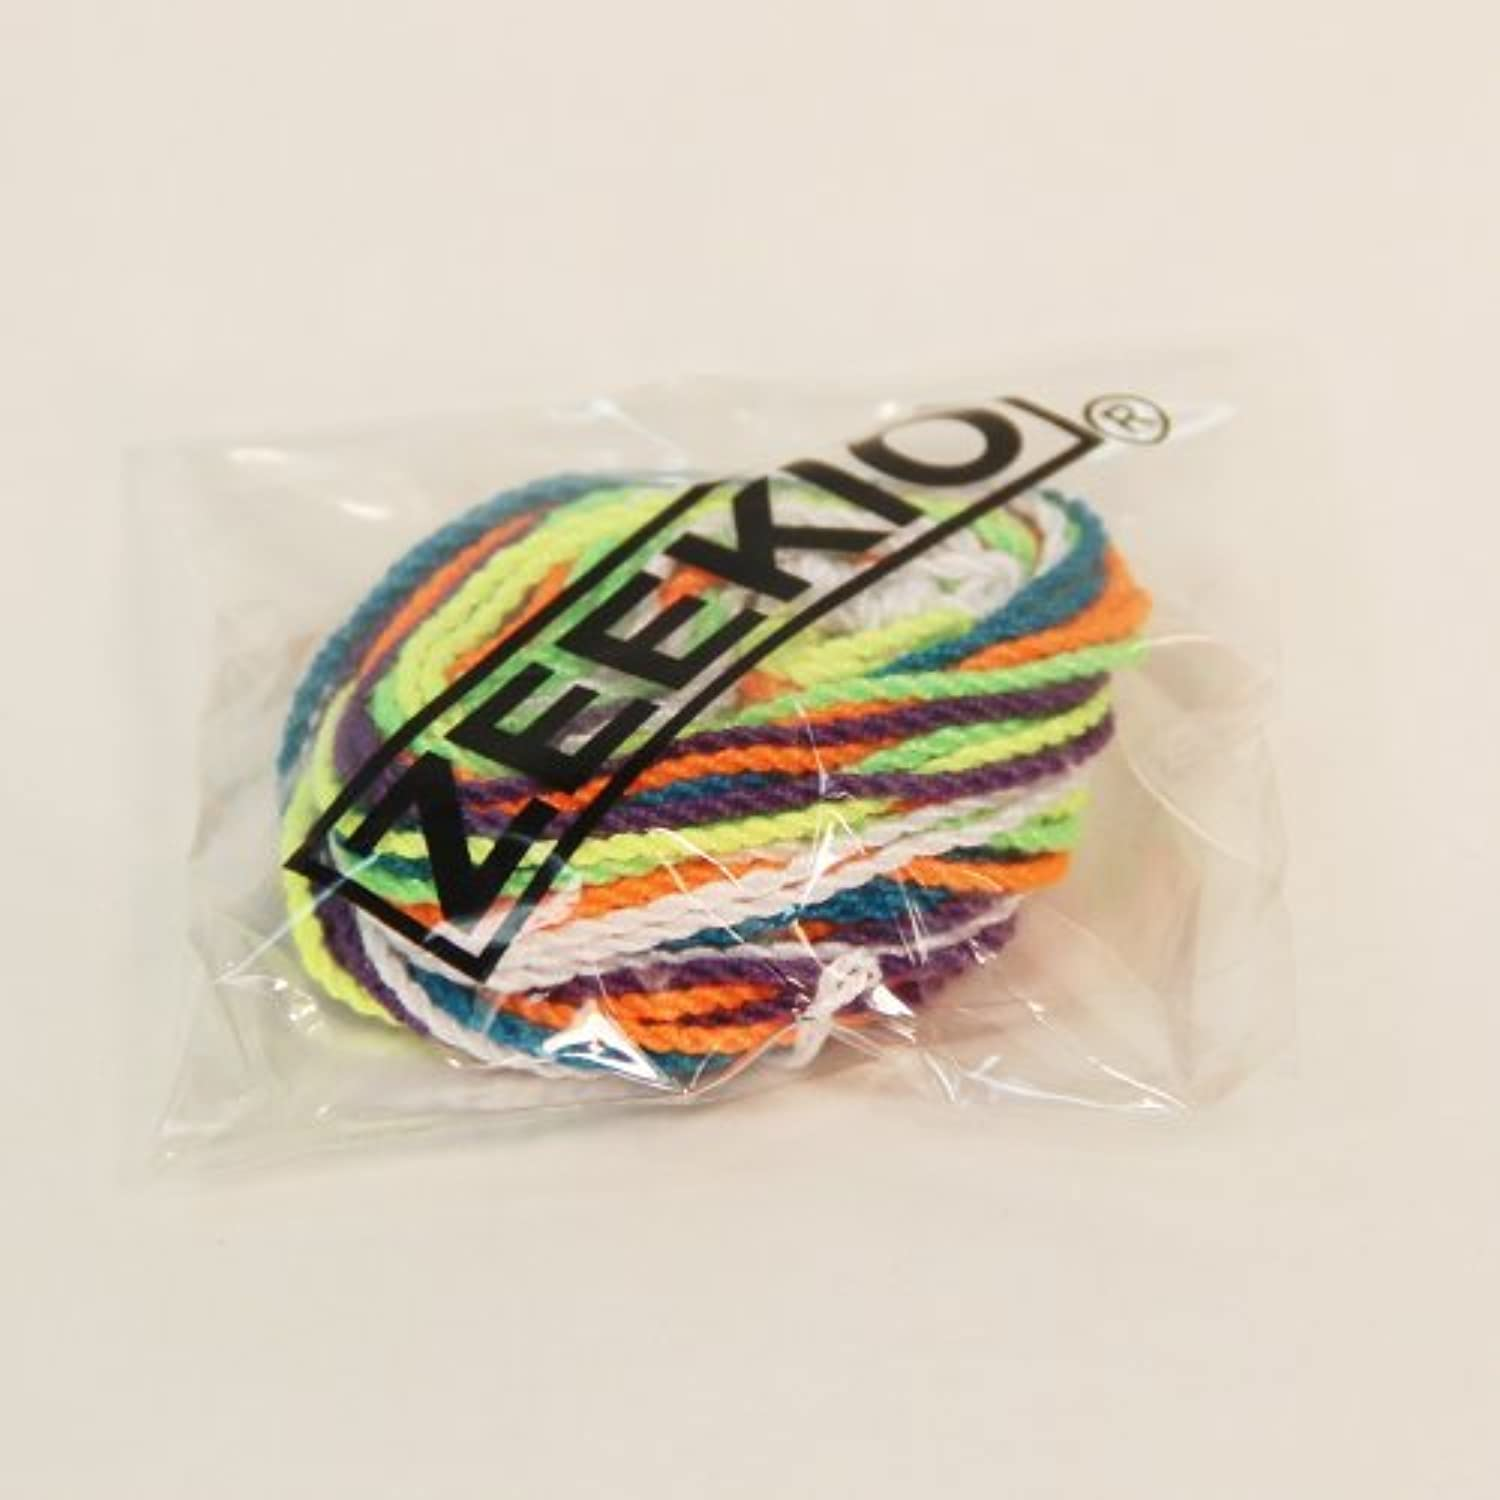 Zeekio Yo-yo Strings -Ten Pack of 100% Polyester - Mixed Colors by Zeekio [並行輸入品]